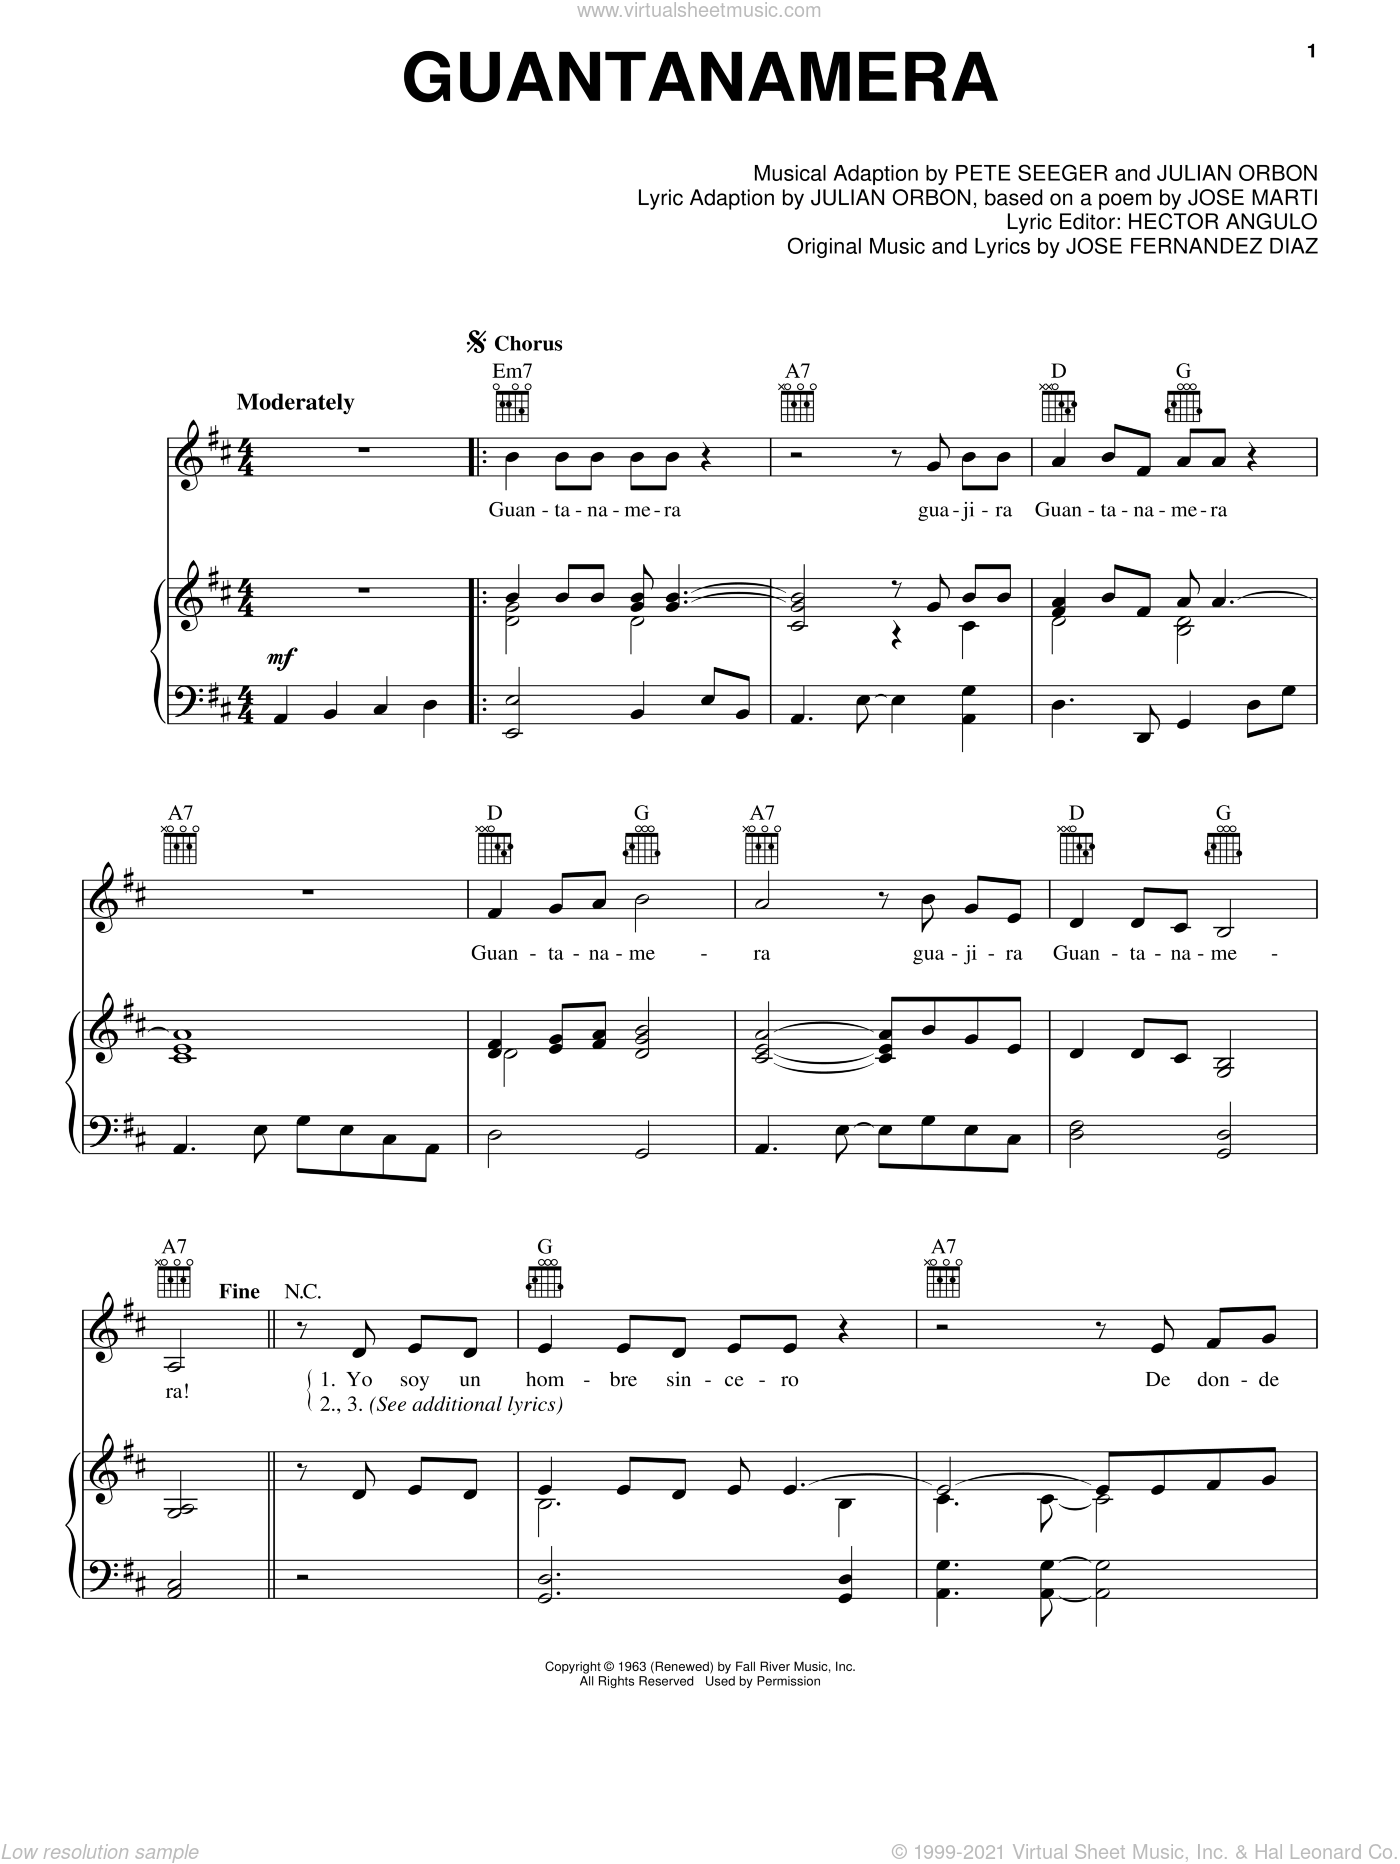 Guantanamera sheet music for voice, piano or guitar by Pete Seeger and Julian Orbon. Score Image Preview.